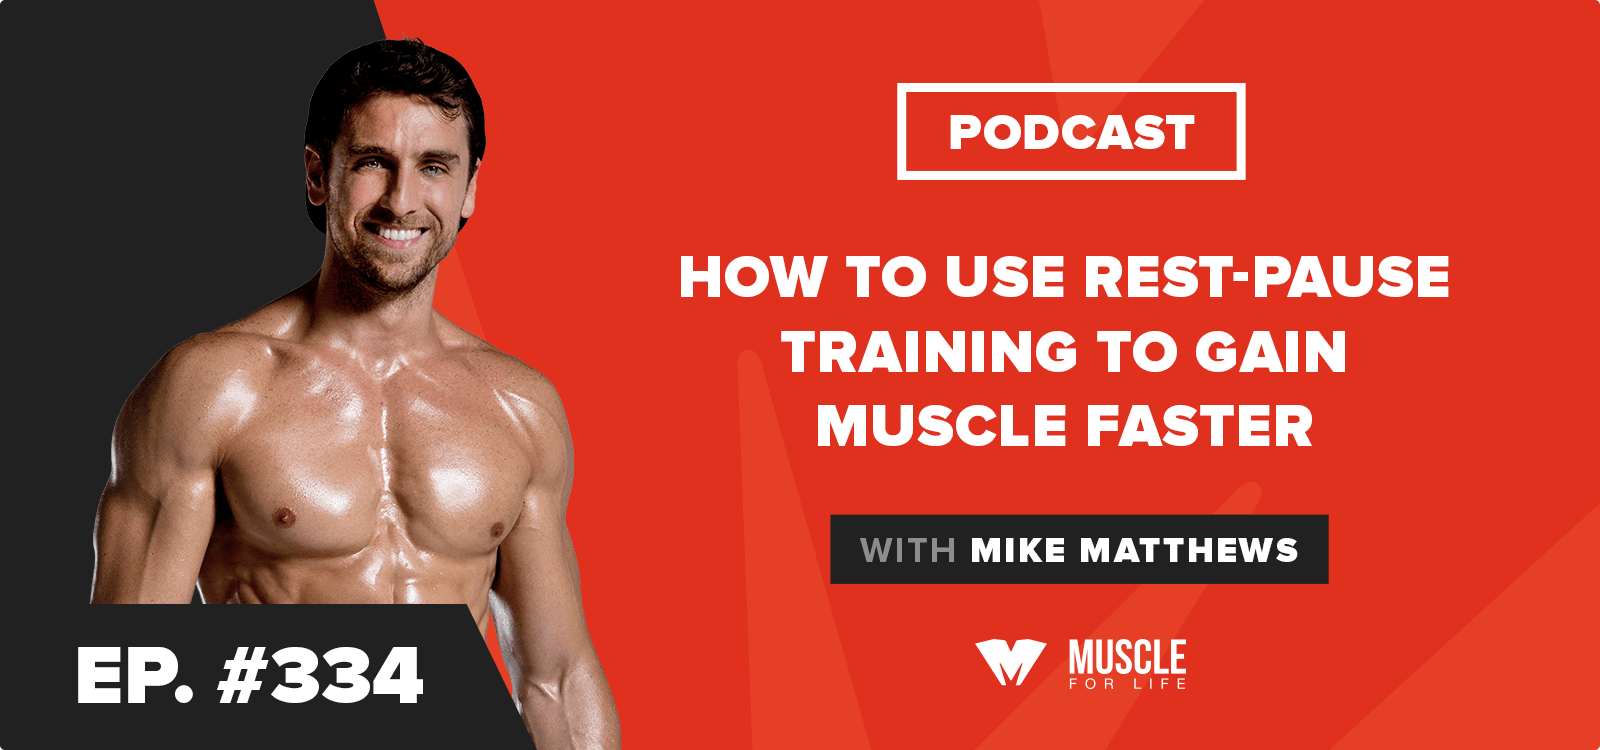 How to Use Rest-Pause Training to Gain Muscle Faster